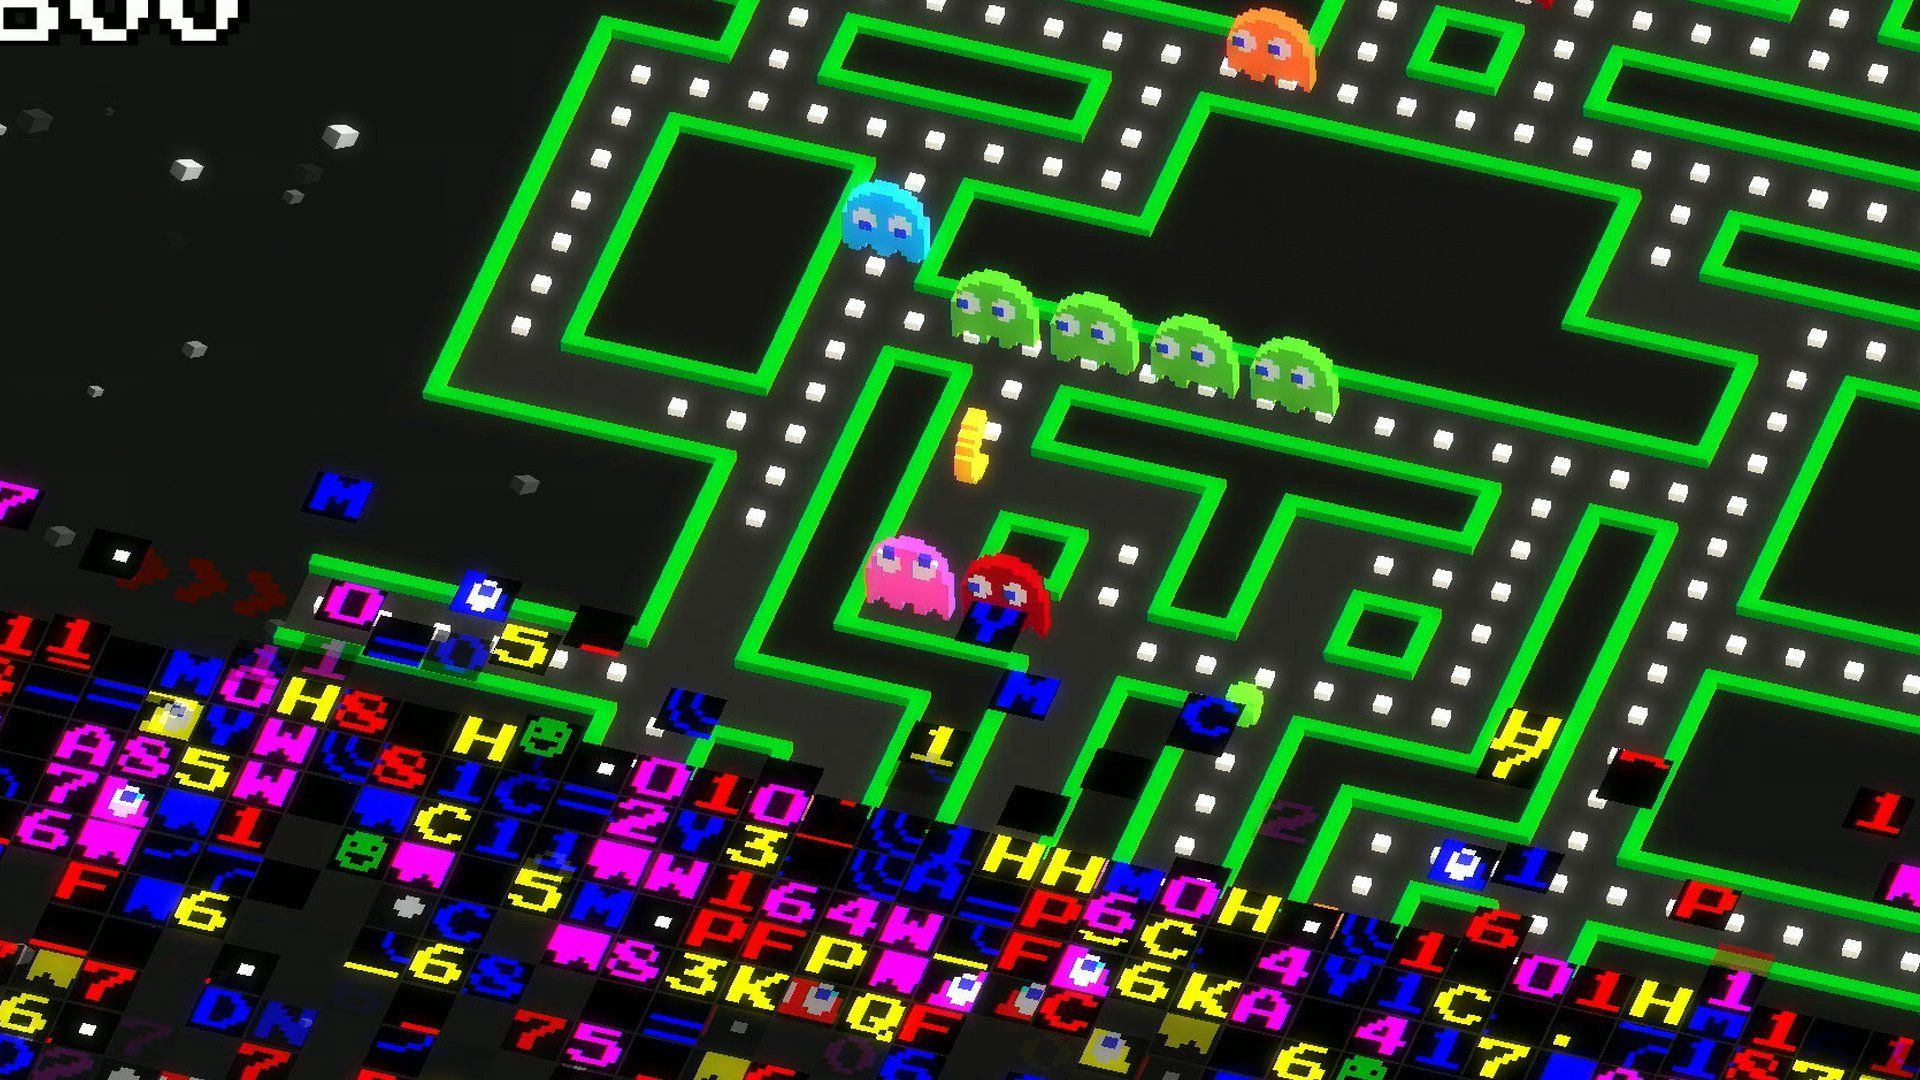 Home Design 3d App Online Arcade Game Pac Man 256 Now Available On The App Store